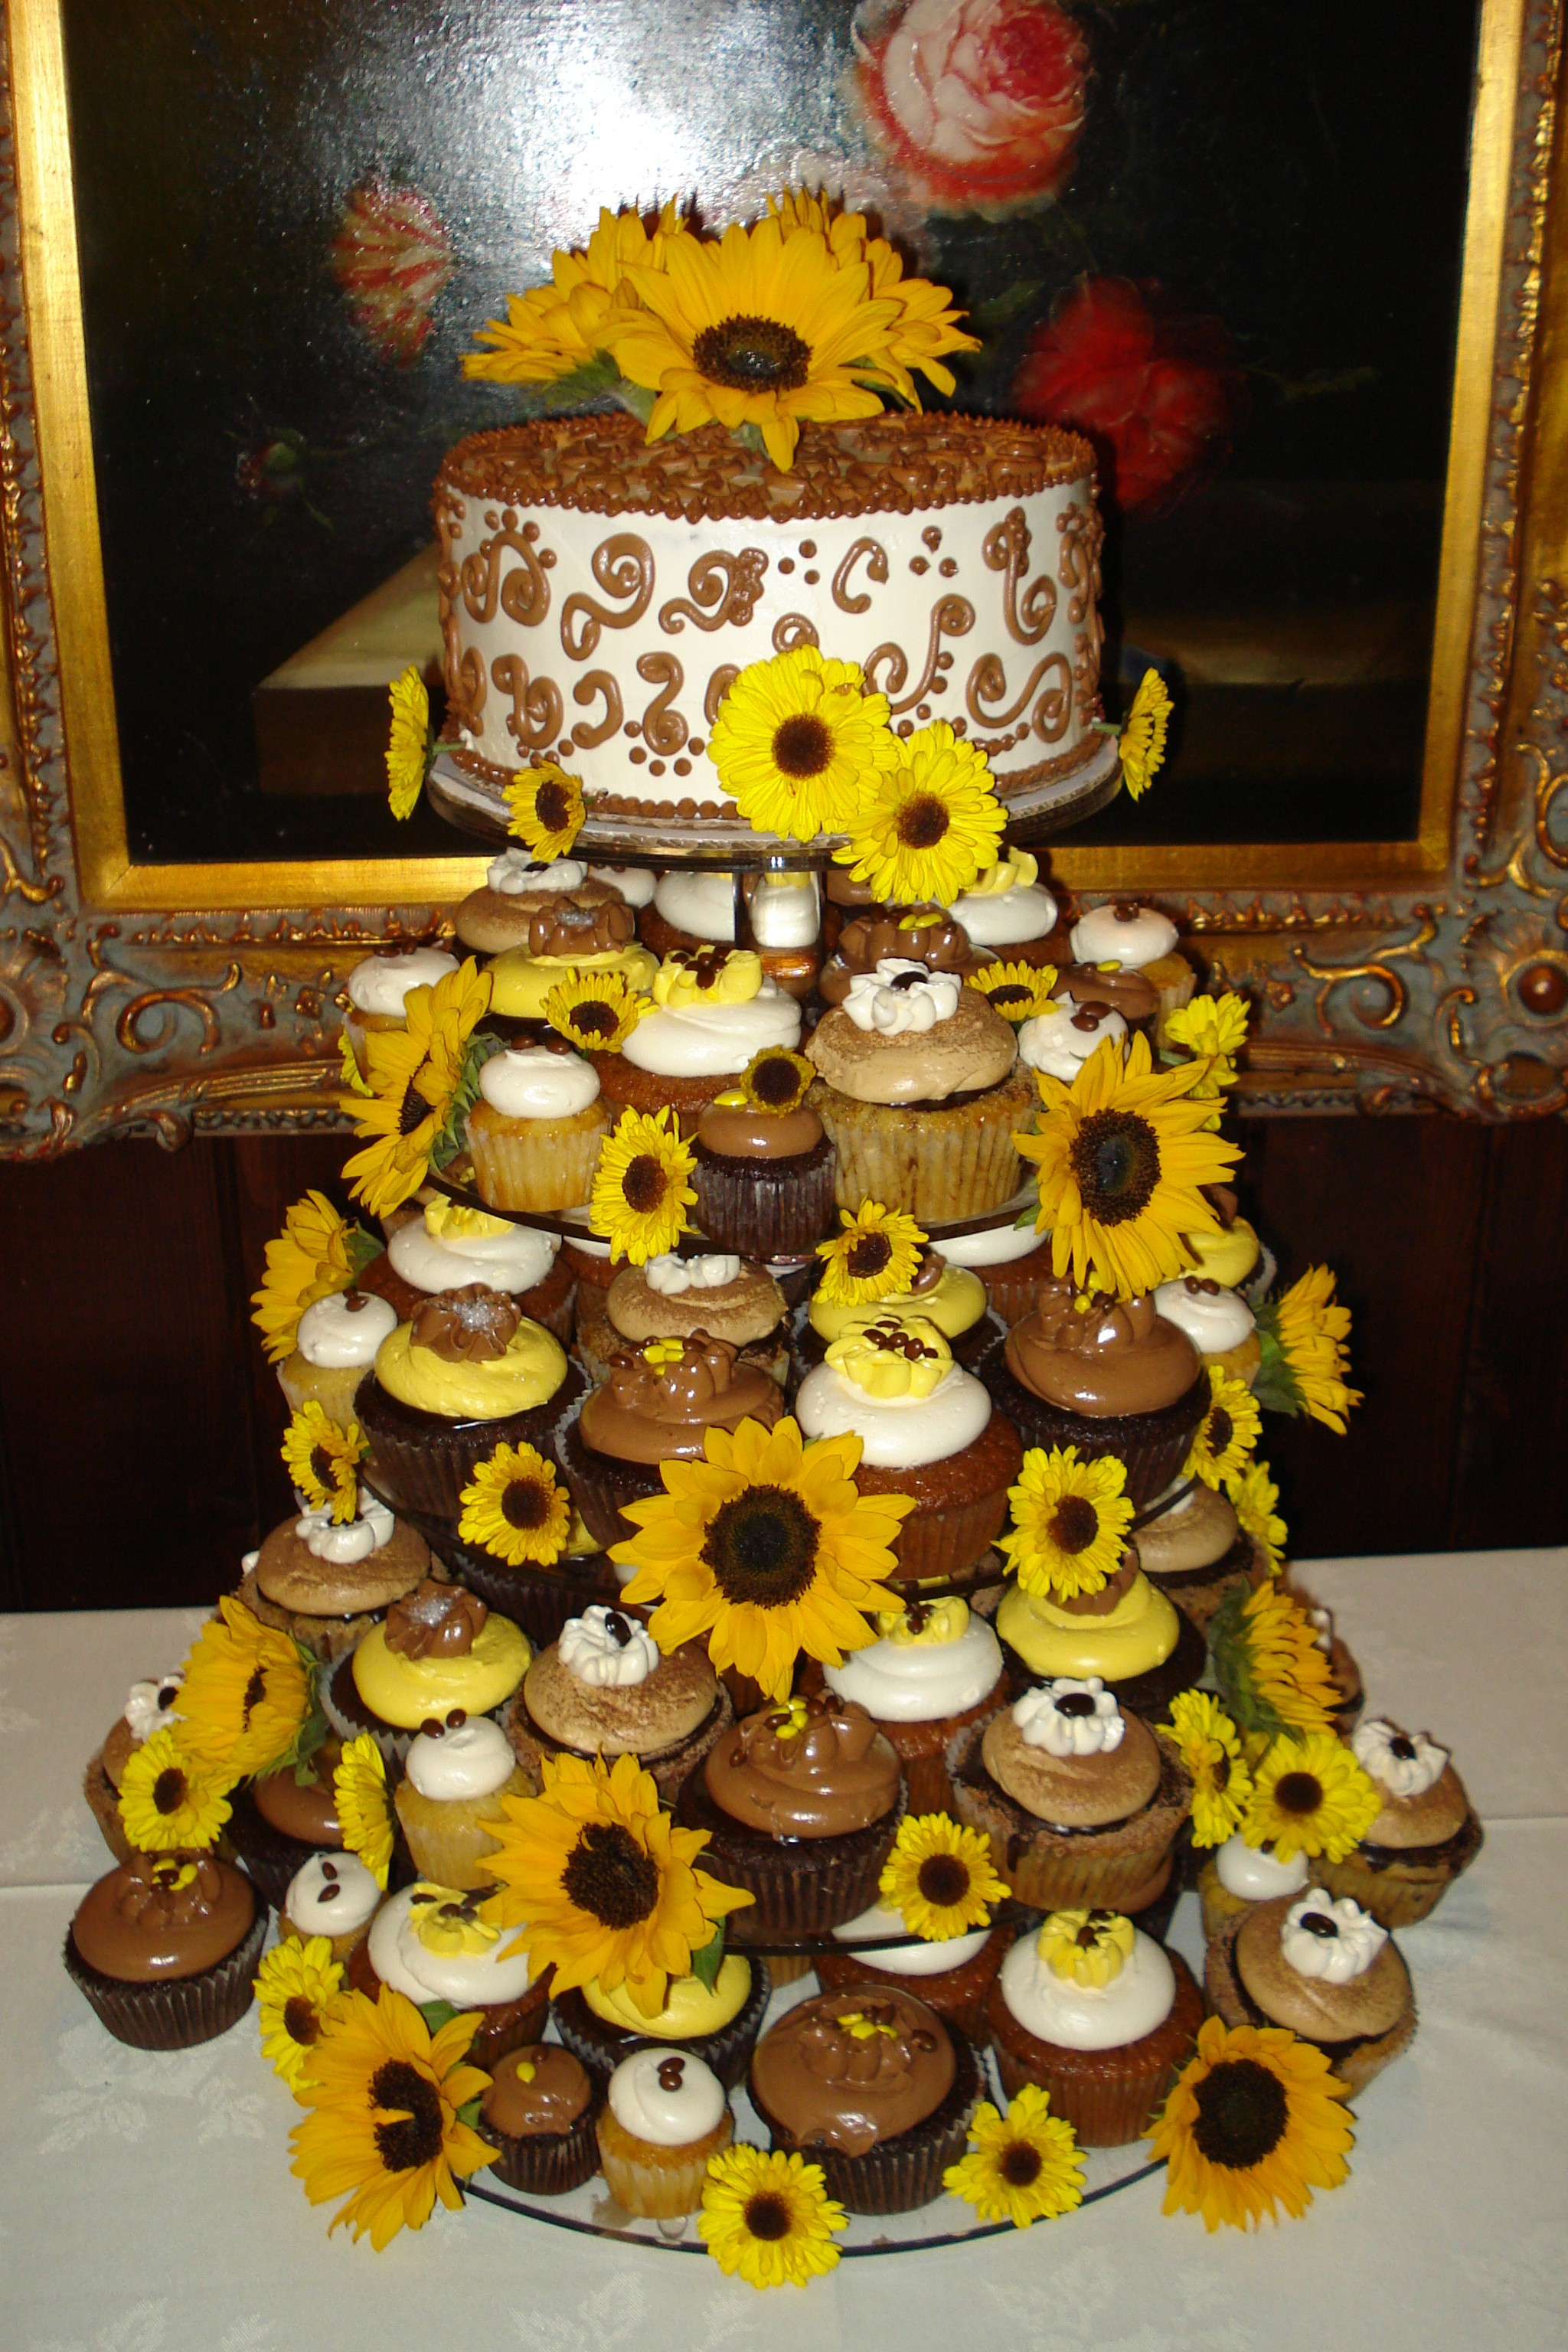 Cupcake tower with sunflowers